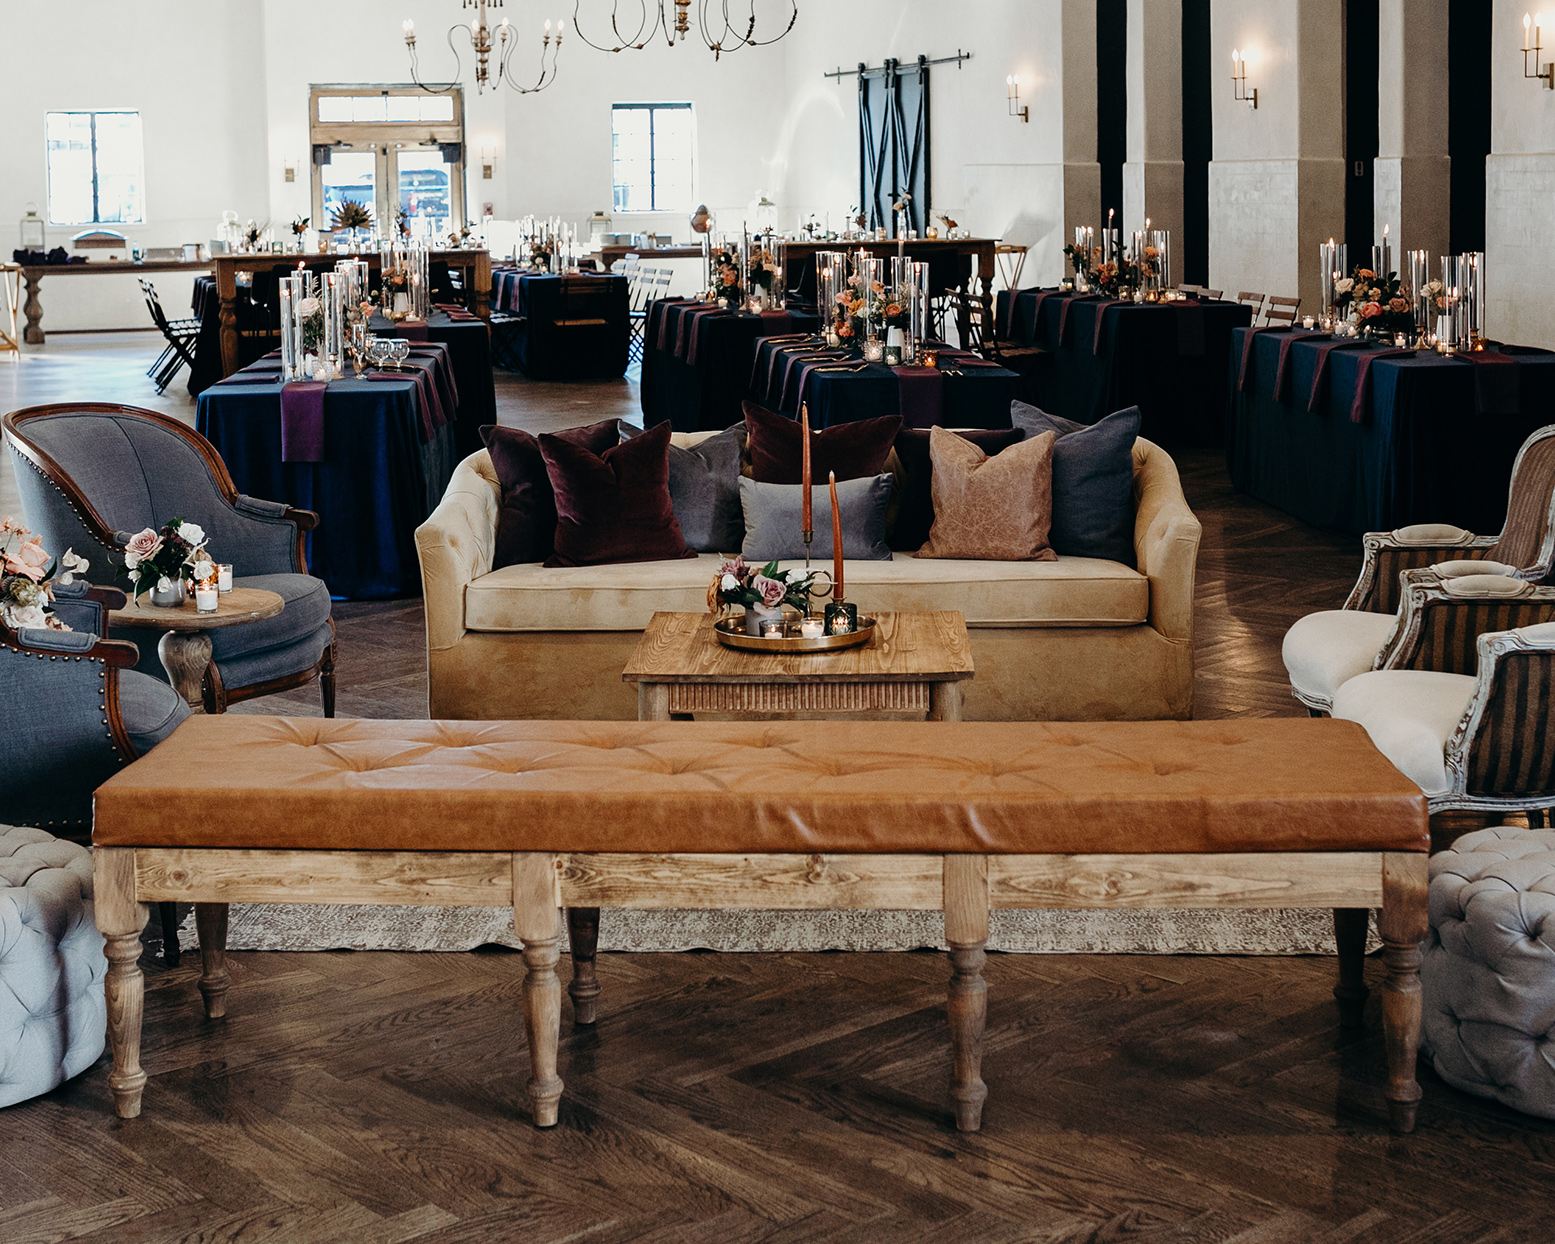 deep colored brown, maroon and blue wedding reception lounge area